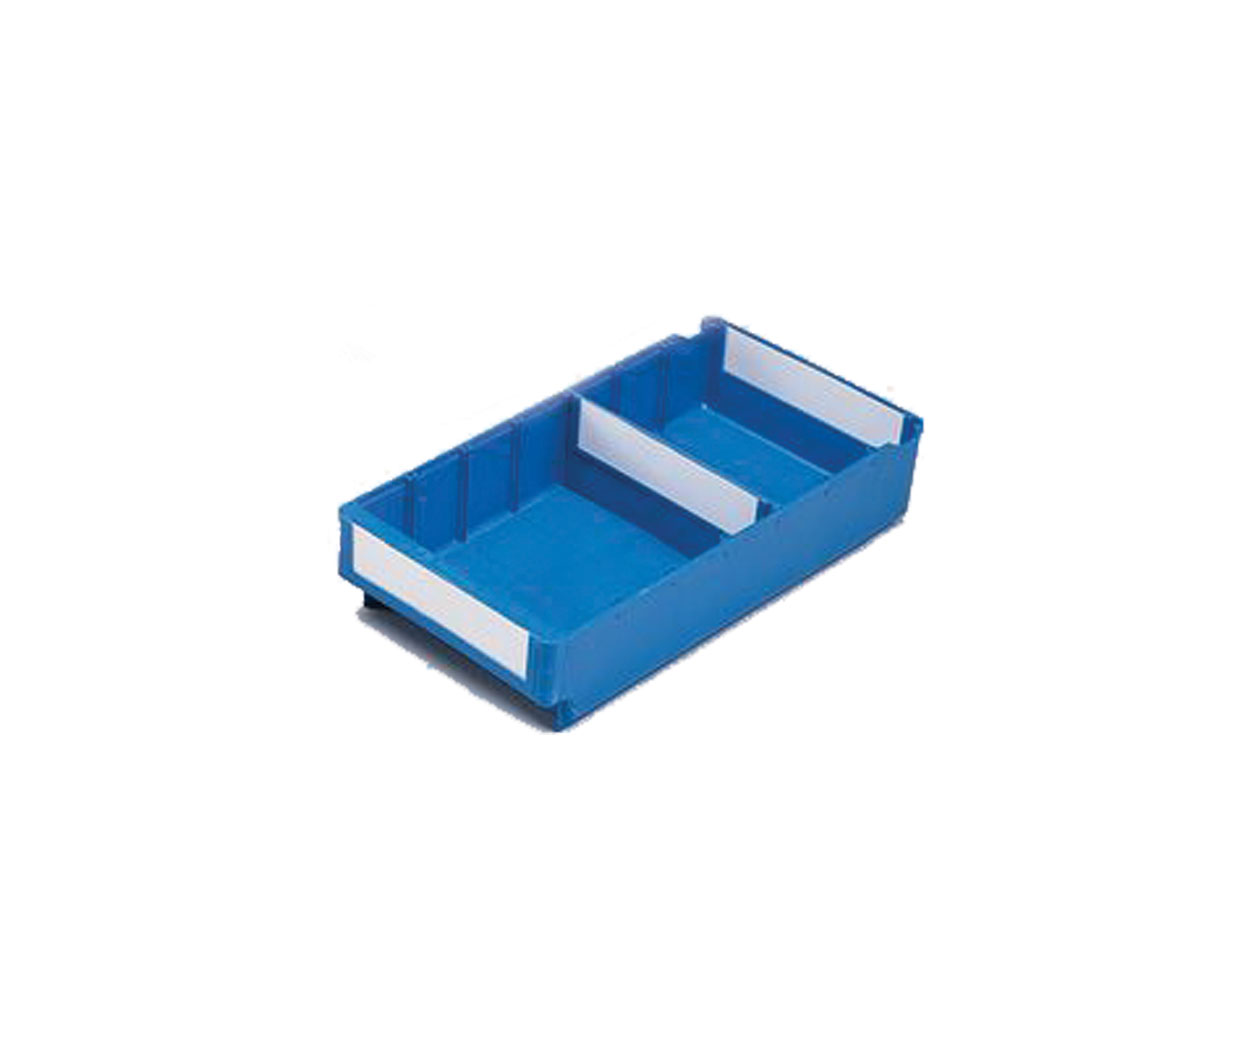 Blue Prescription Storage Tray & 4 Dividers - Pack of 1 - (Limited Stock Available)